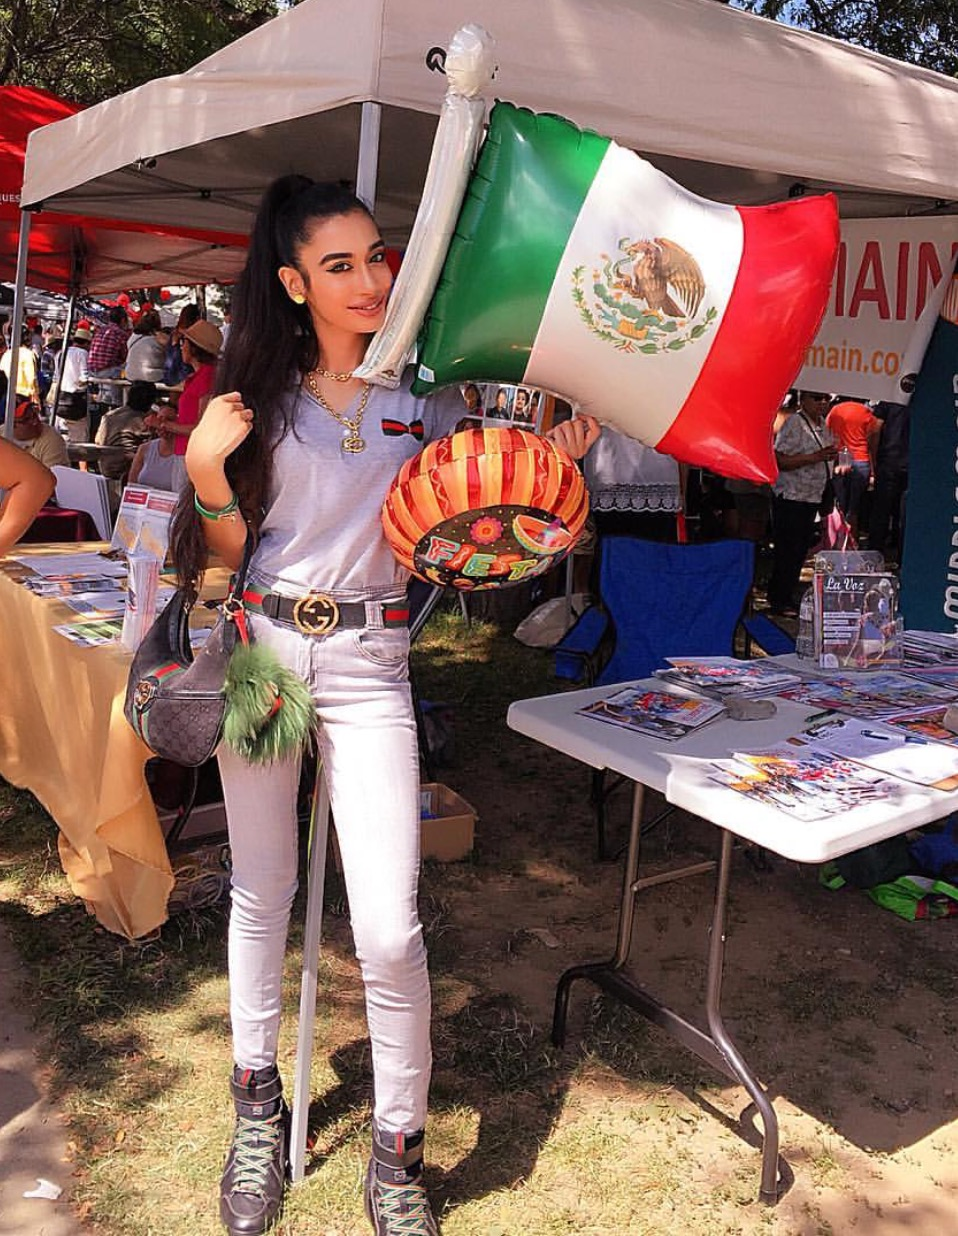 Busted out all my Gucci red and green in honor of LA GUELAGUETZA MEXICAN FESTIVAL, partying like I'm El Chapo 😂❤️🇲🇽 SO EXCITED TO CELEBRATE AND SHARE IN THE RICH AND BEAUTIFUL MEXICAN CULTURE (and of course tear up all of this amazing Mexican food 🙀)!!! VIVA MEXICO! BESITOS, FAFA ❤️🌹🇲🇽